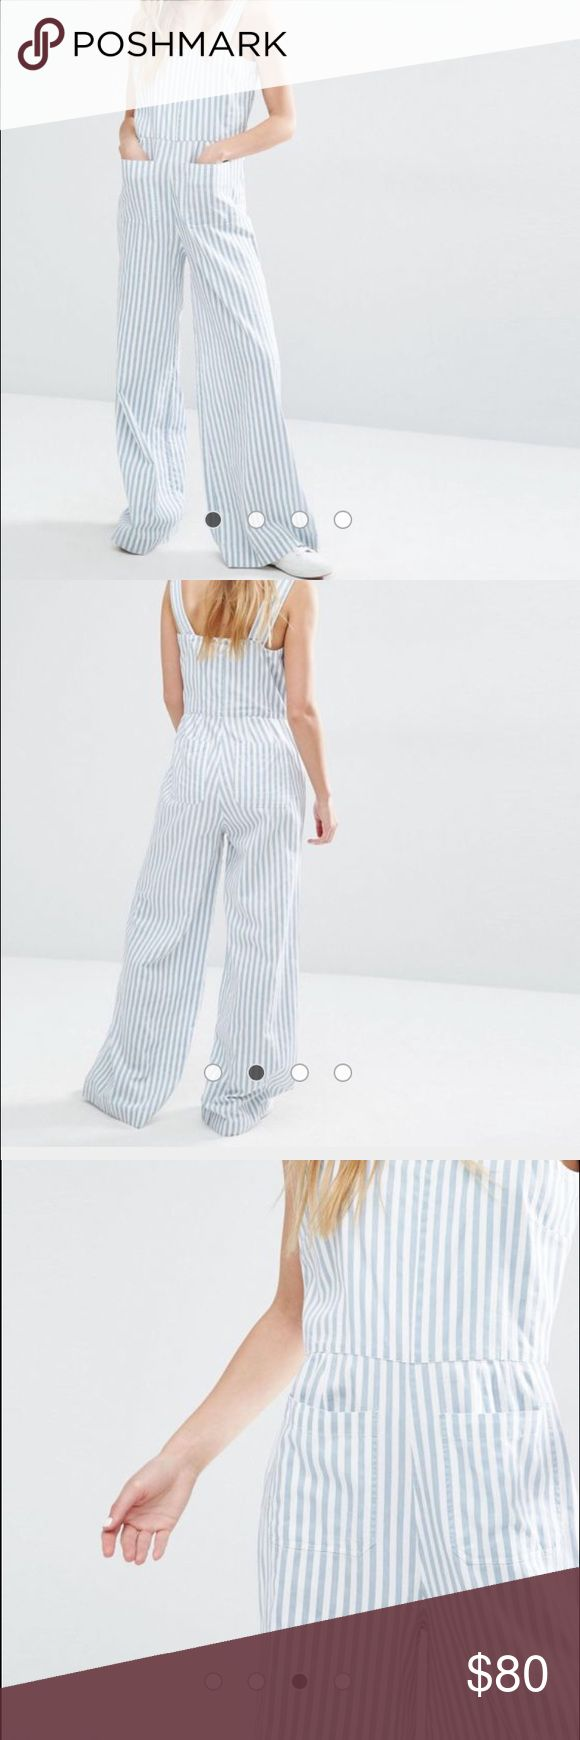 "NWT and in Package Rolla's Stripe Jumpsuit Sz M New With Tags and In Package, Rolla's Striped Jumpsuit, Size M. PRODUCT DETAILS: Jumpsuit by Rolla's, Pure-cotton woven fabric, Square neckline, Stripe design, Functional pockets, Wide legs, Regular fit - true to size, Machine wash, 100% Cotton.  The model is wearing a UK S/EU S/US XS and is 173cm/5'8"" tall. Please refer to the ASOS Size Chart for more exact Measurements. ASOS Pants Jumpsuits & Rompers"